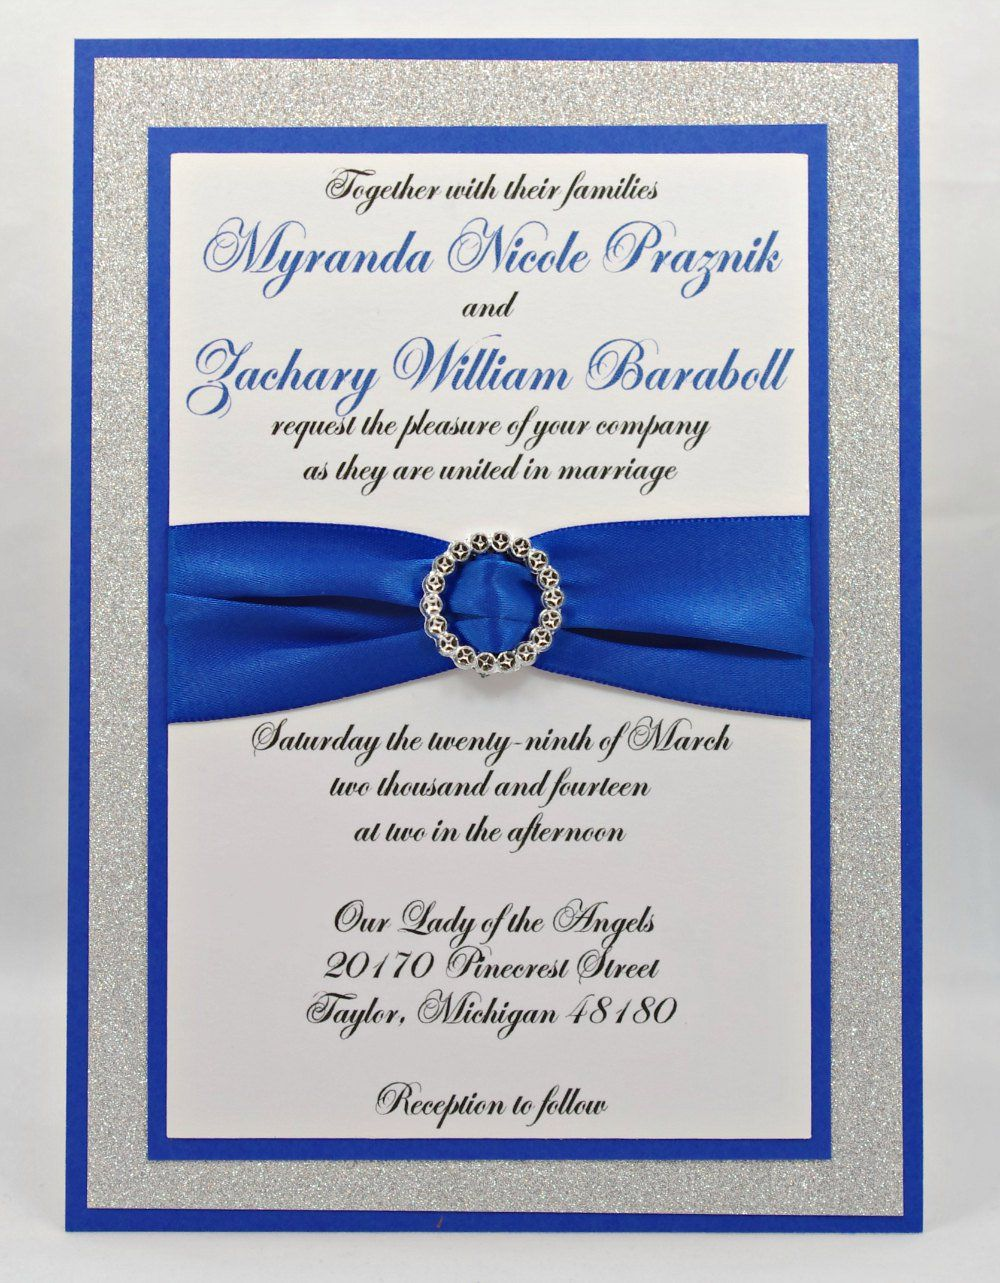 Blue wedding invitations cheap royal blue diy wedding invitation blue wedding invitations cheap royal blue diy wedding invitation kits wedding save the date pinterest diy wedding invitation kits invitation kits filmwisefo